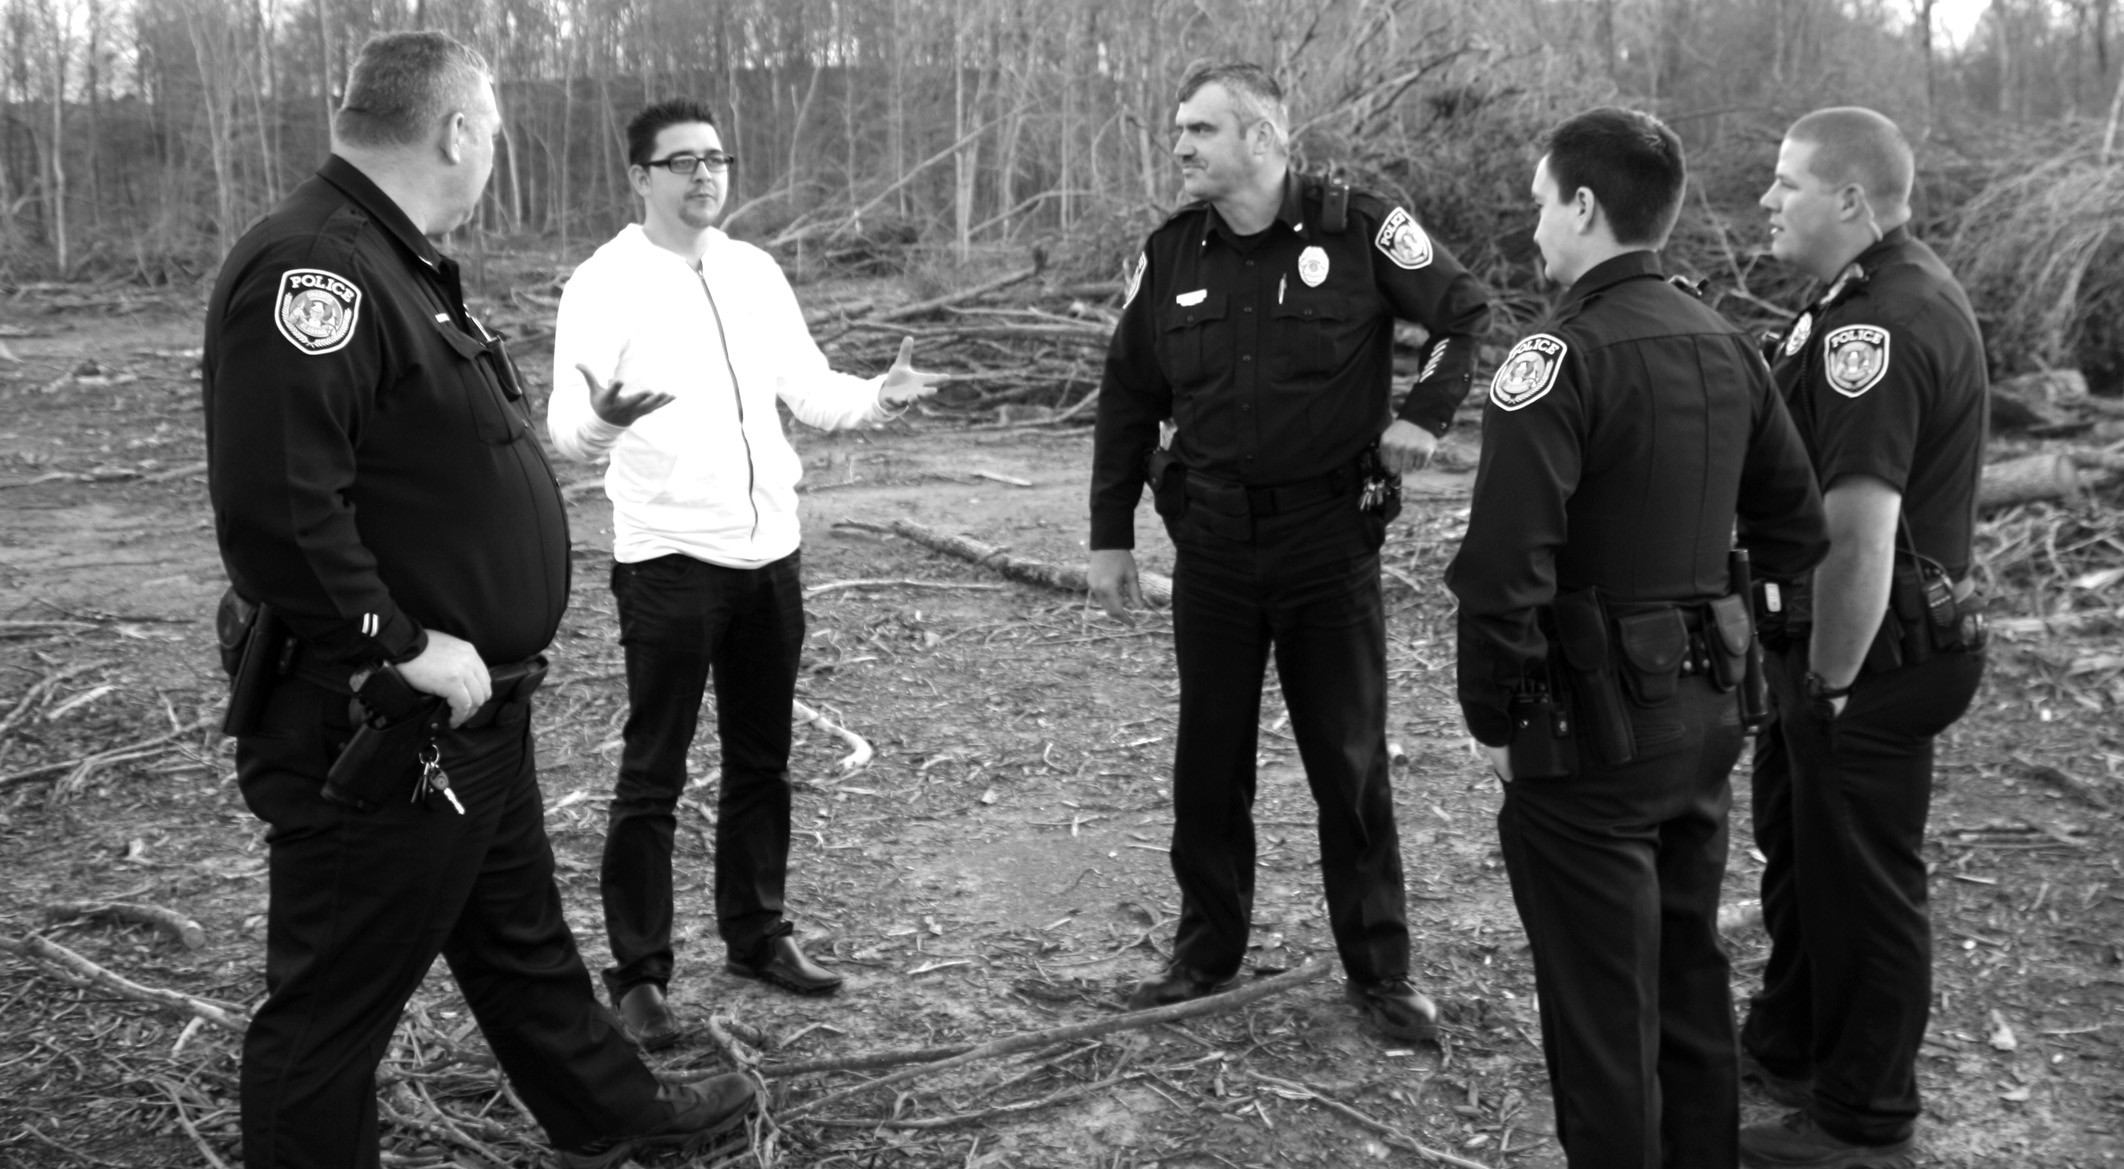 Duarte directs officers of the Oneonta Police Department who will be featured in his movie.